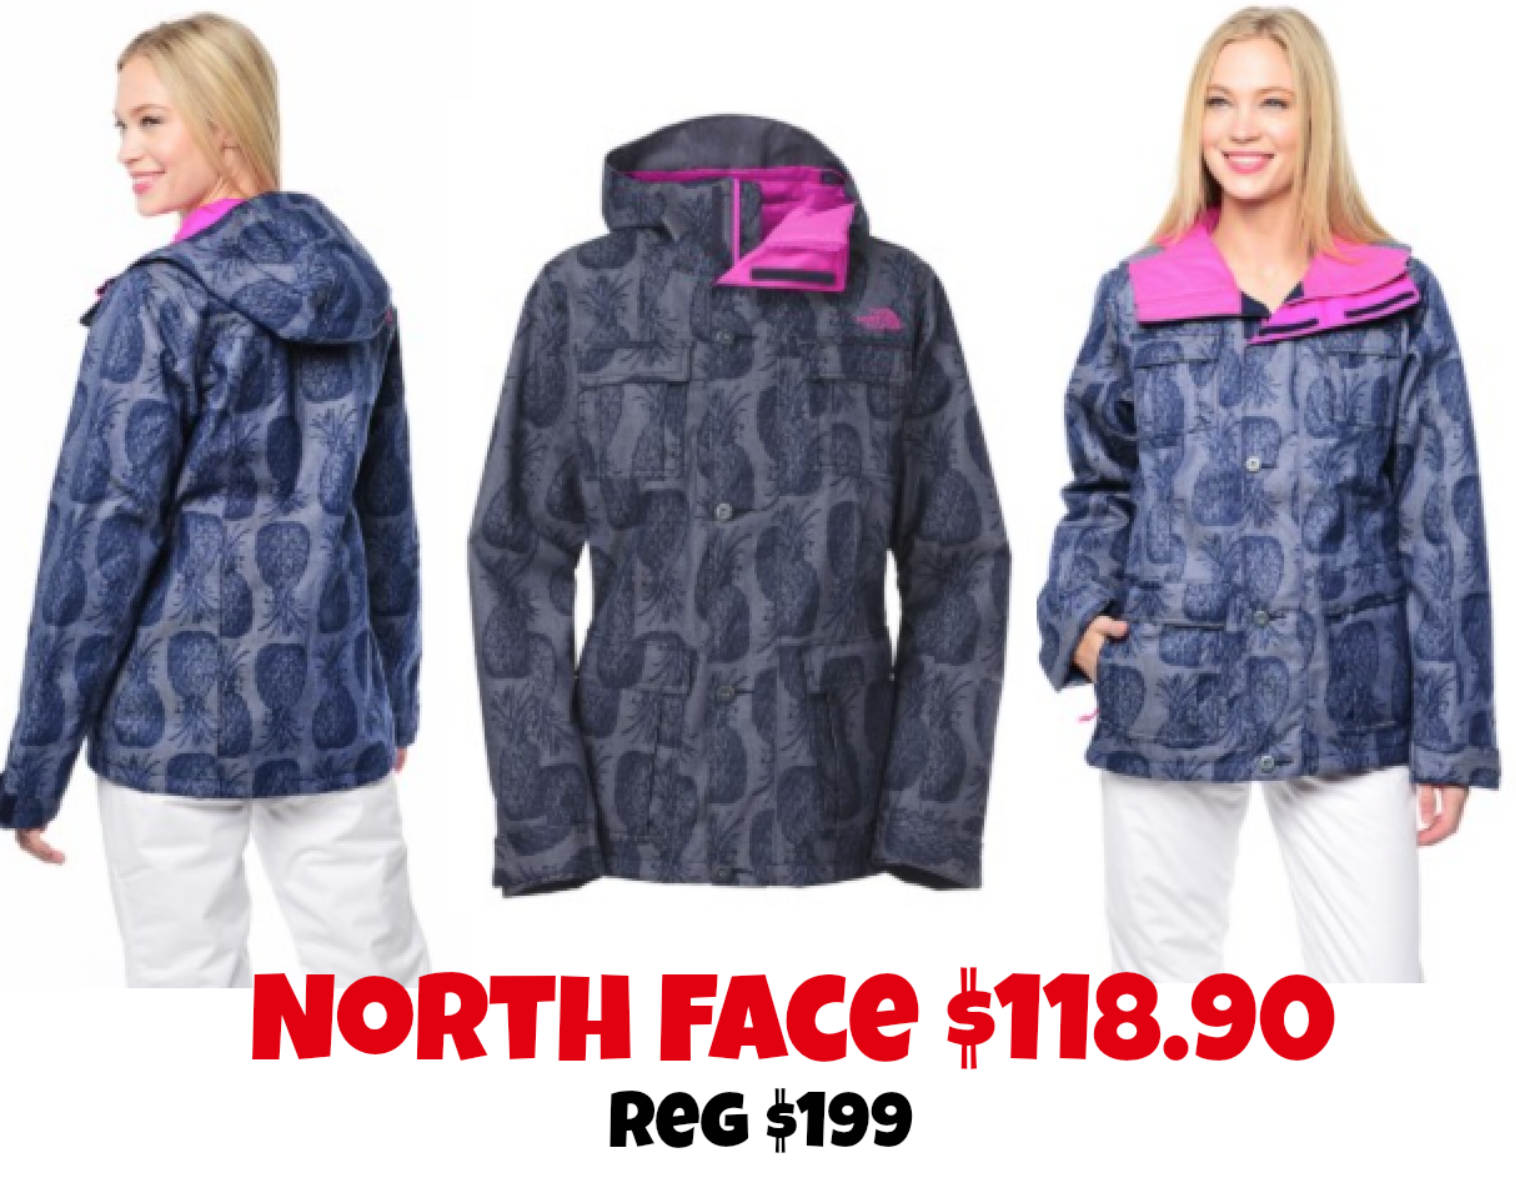 http://www.thebinderladies.com/2015/03/st-bernard-sports-womens-north-face.html